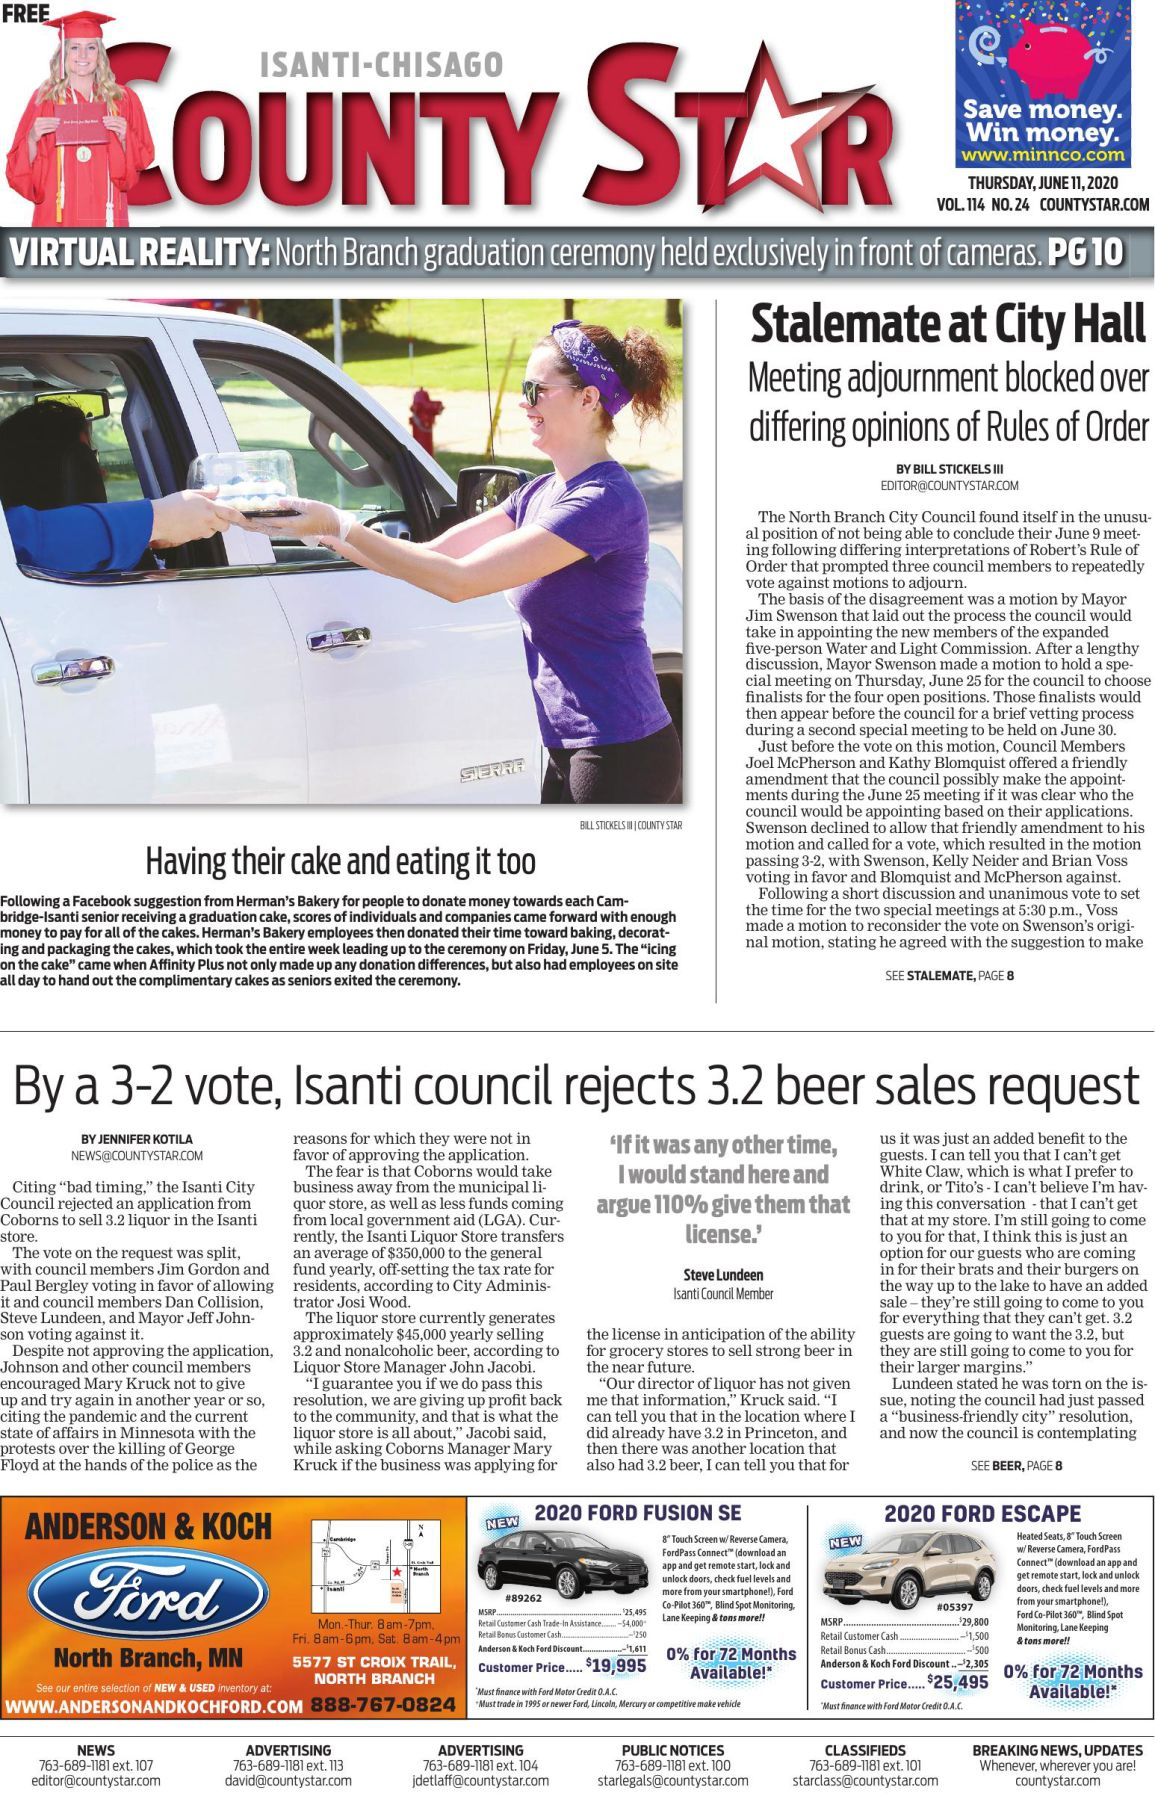 Isanti-Chisago County Star June 11, 2020 e-edition